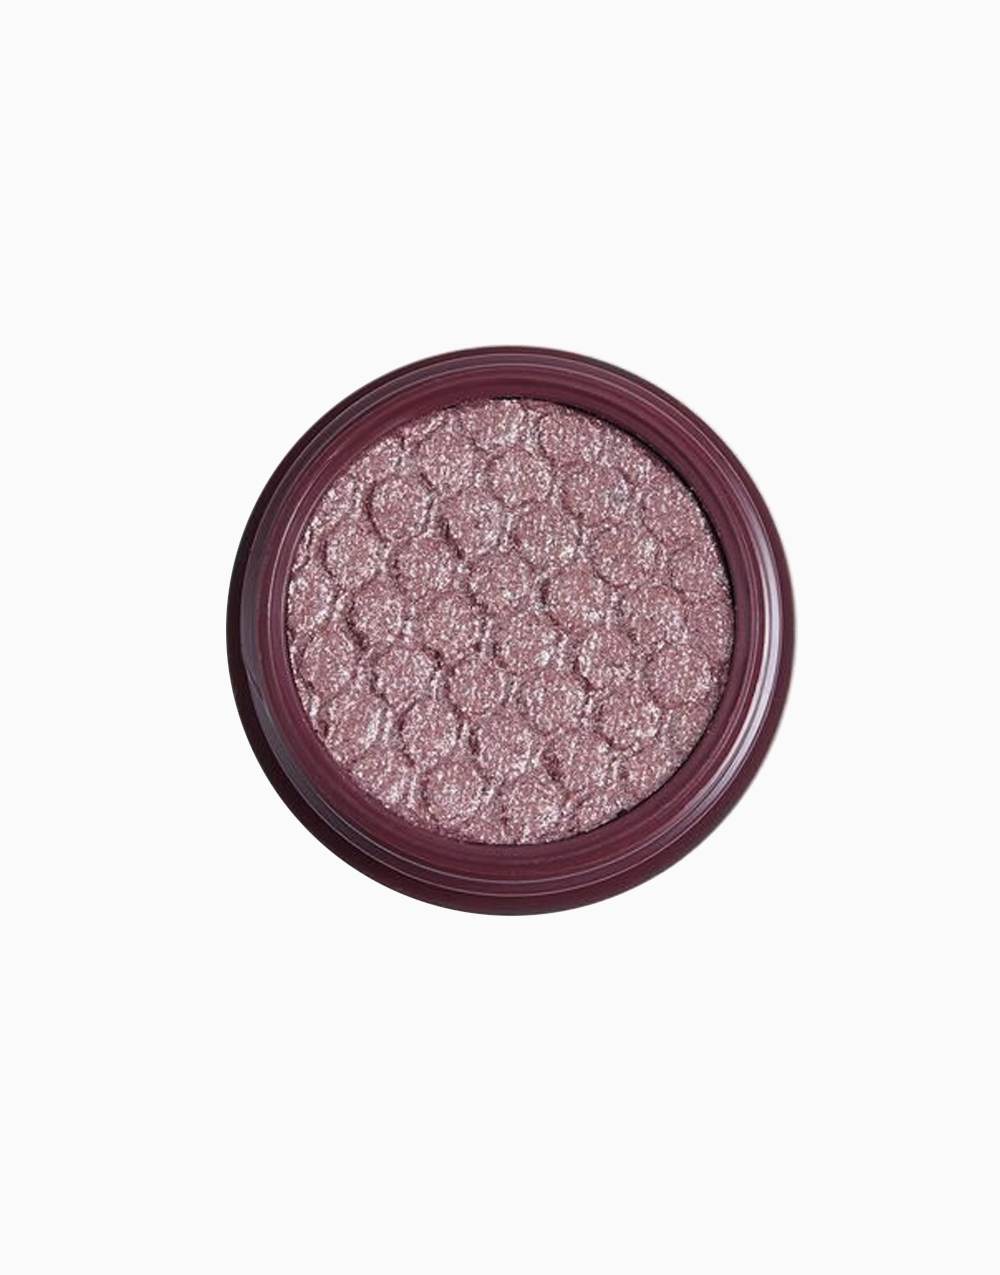 Super Shock Shadow by ColourPop | Party of Five